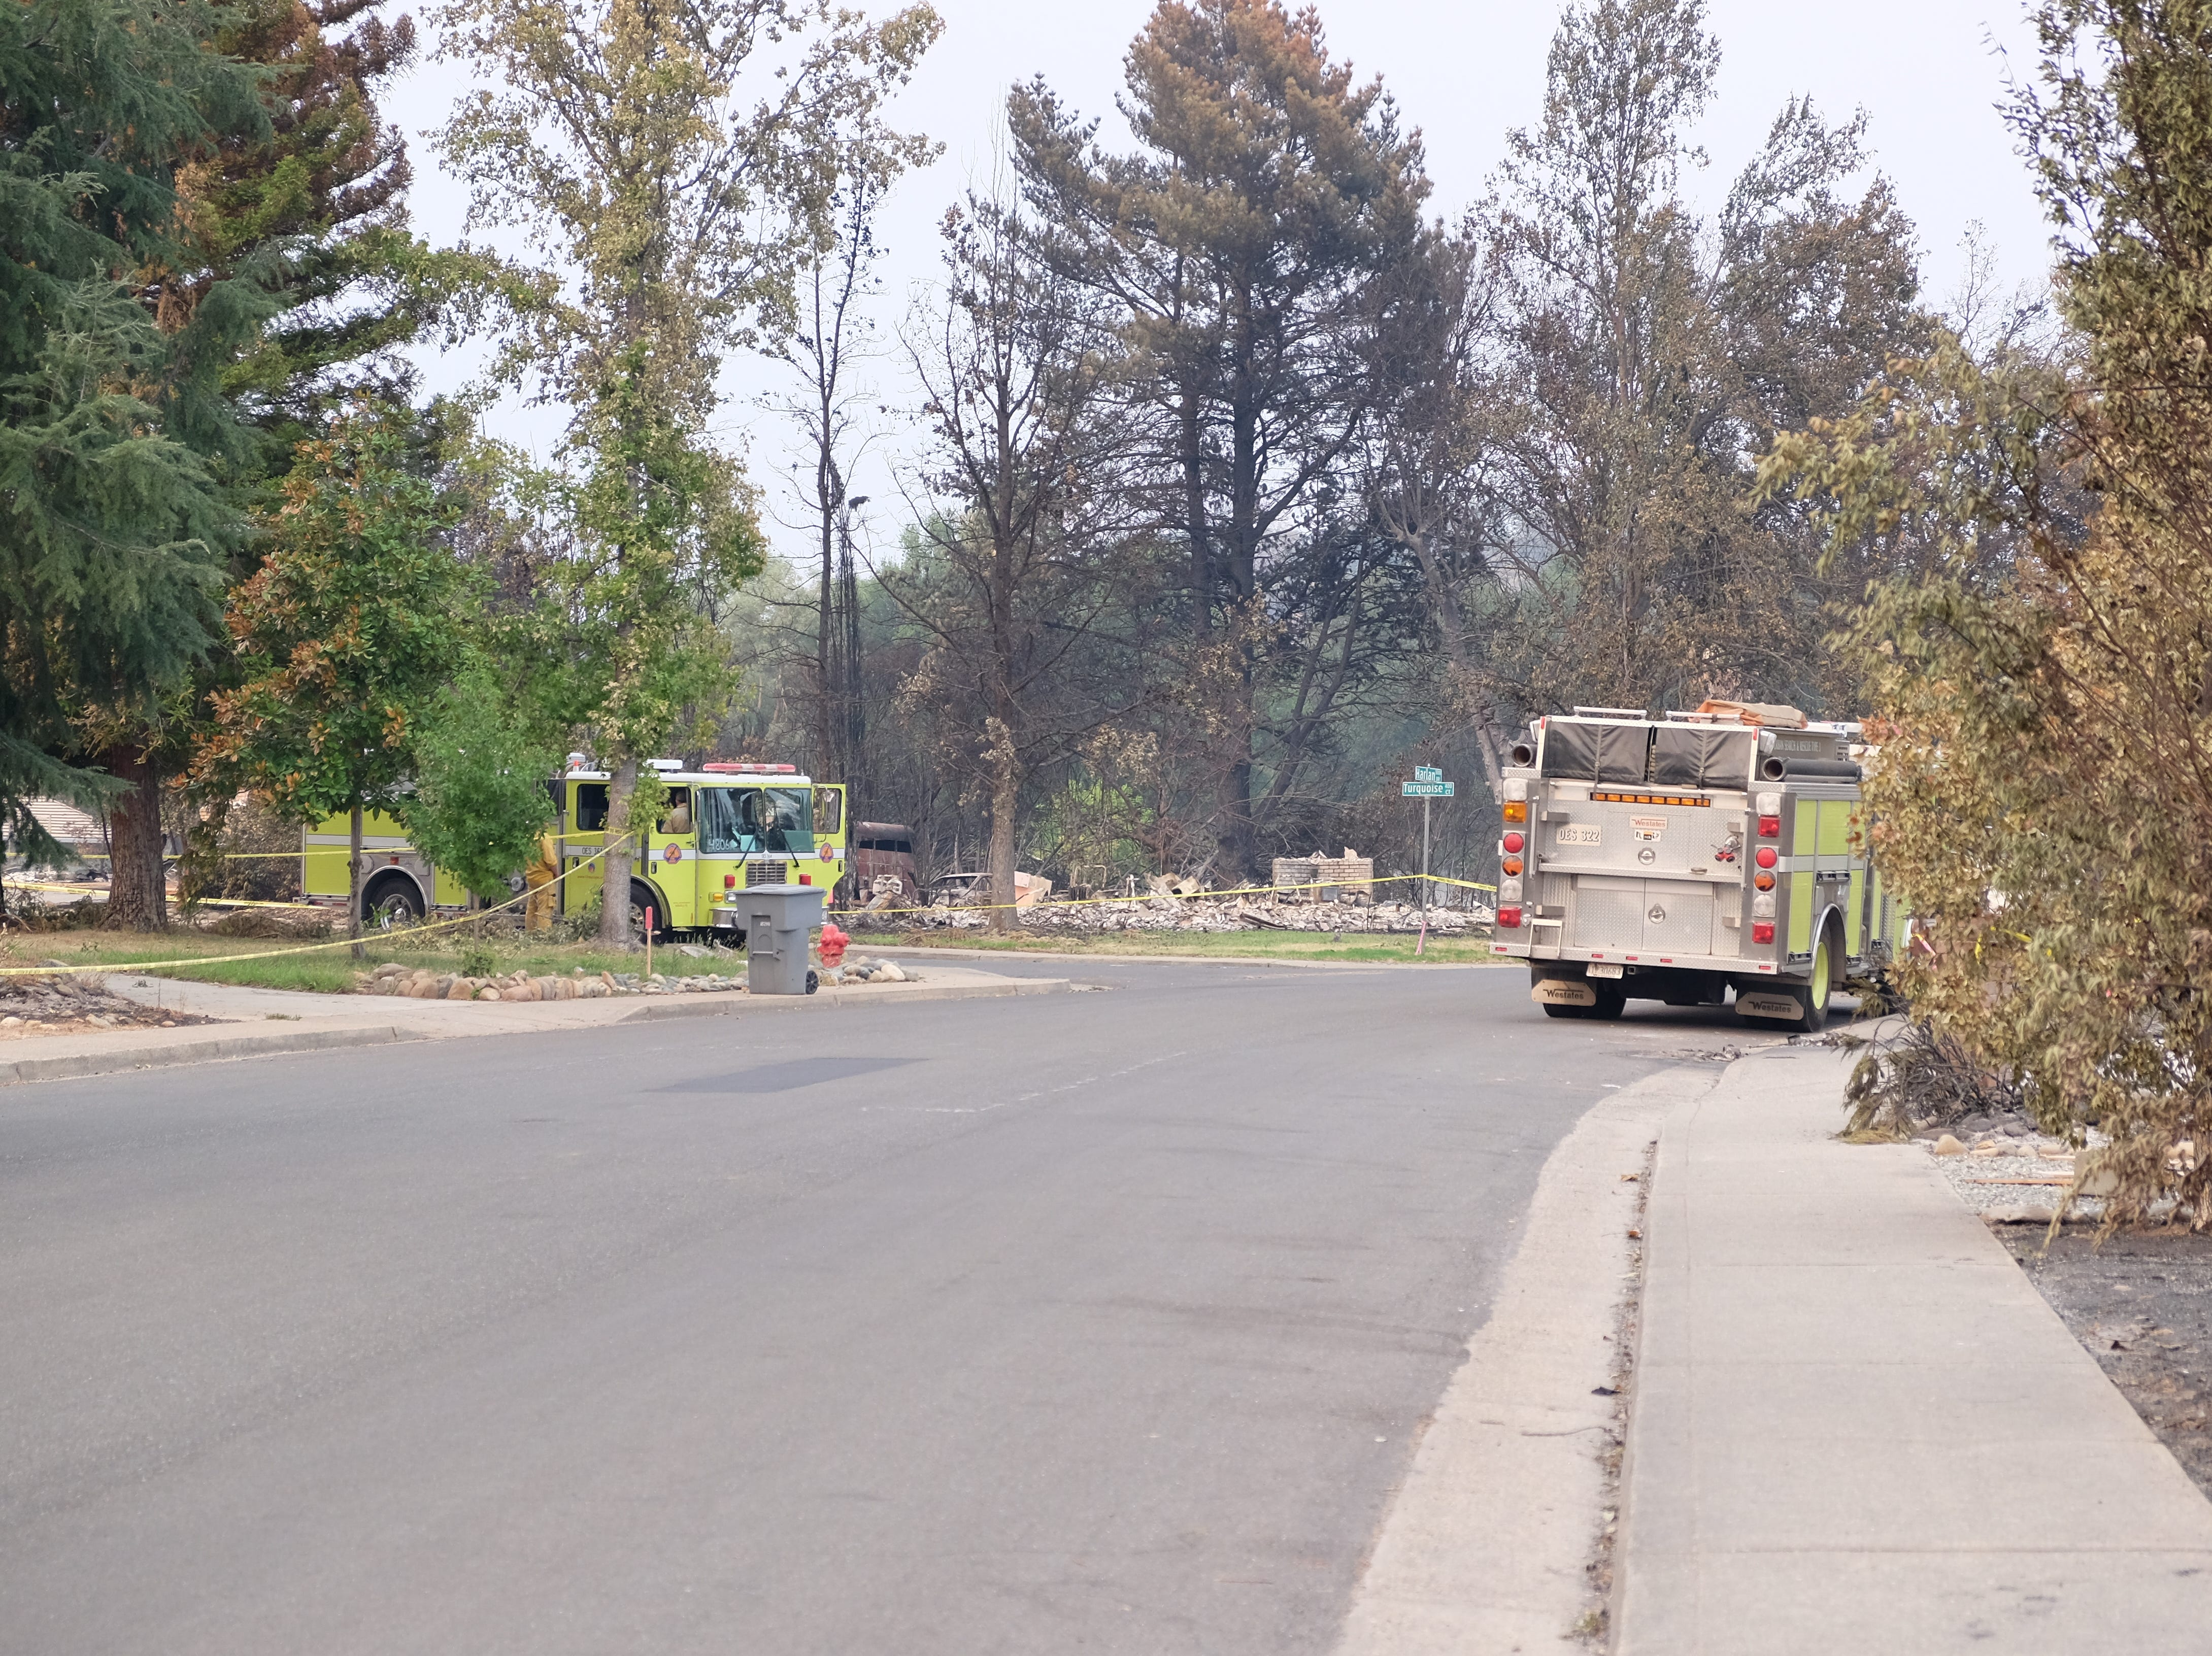 Fire crews patrol the neighborhood in Redding which saw widespread destruction from the Carr Fire.